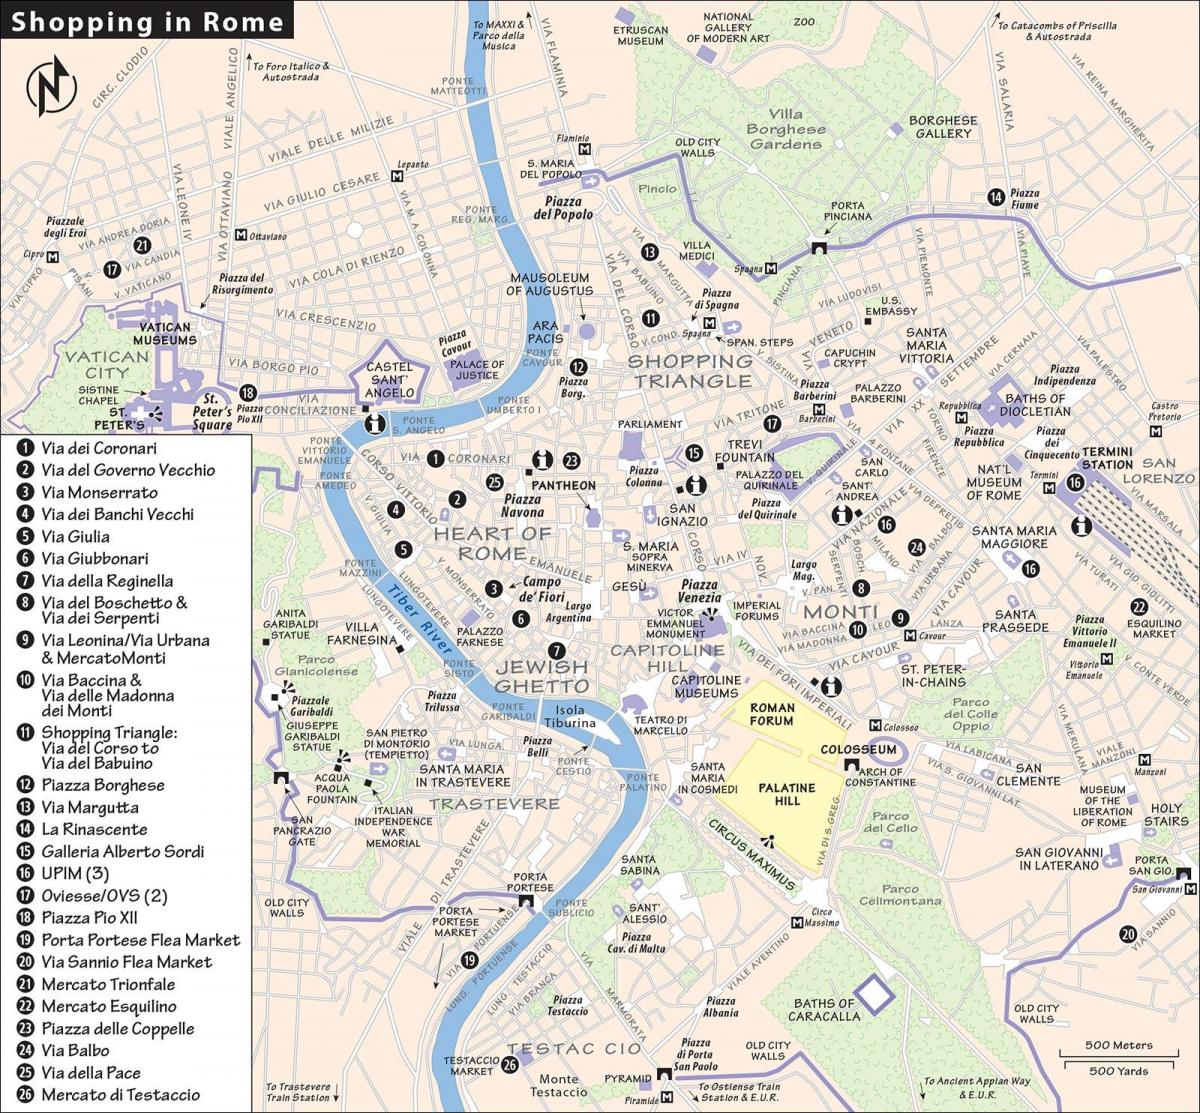 Map of Rome shopping